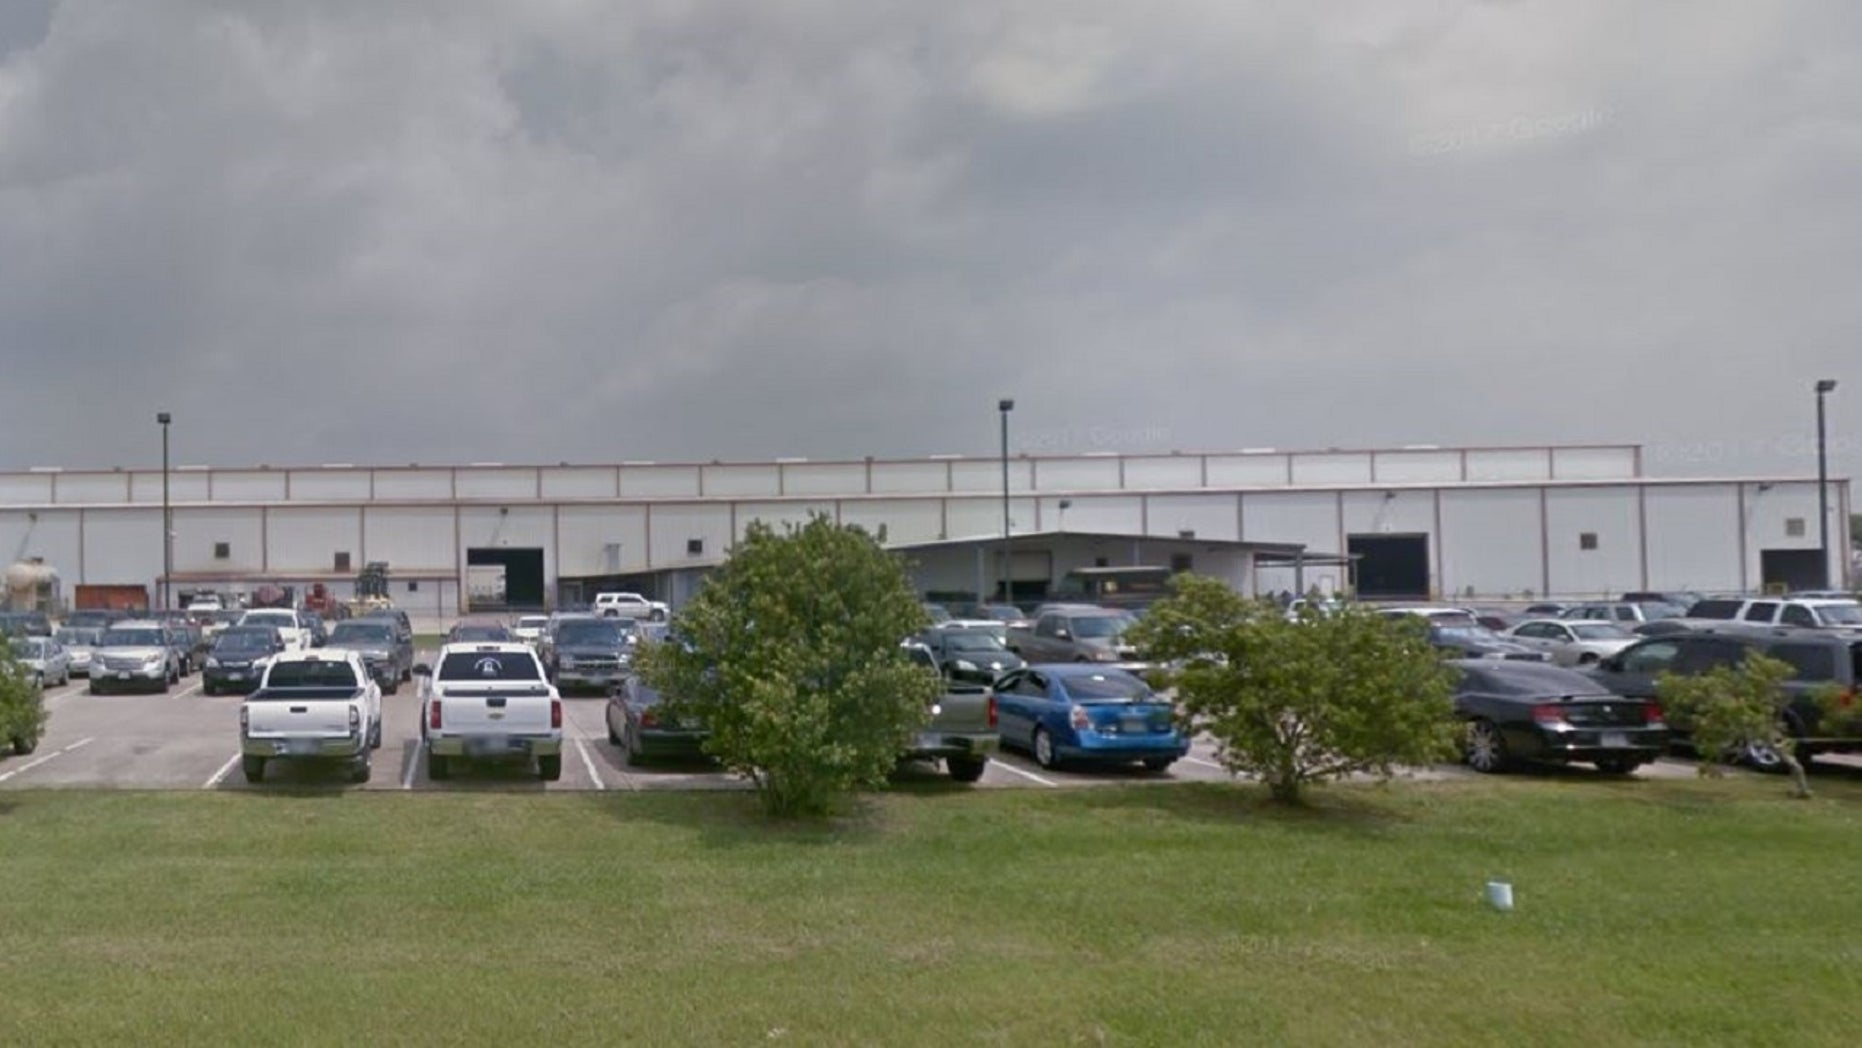 One person was fatally stabbed and another was injured Wednesday at a workplace near Houston, reports said.